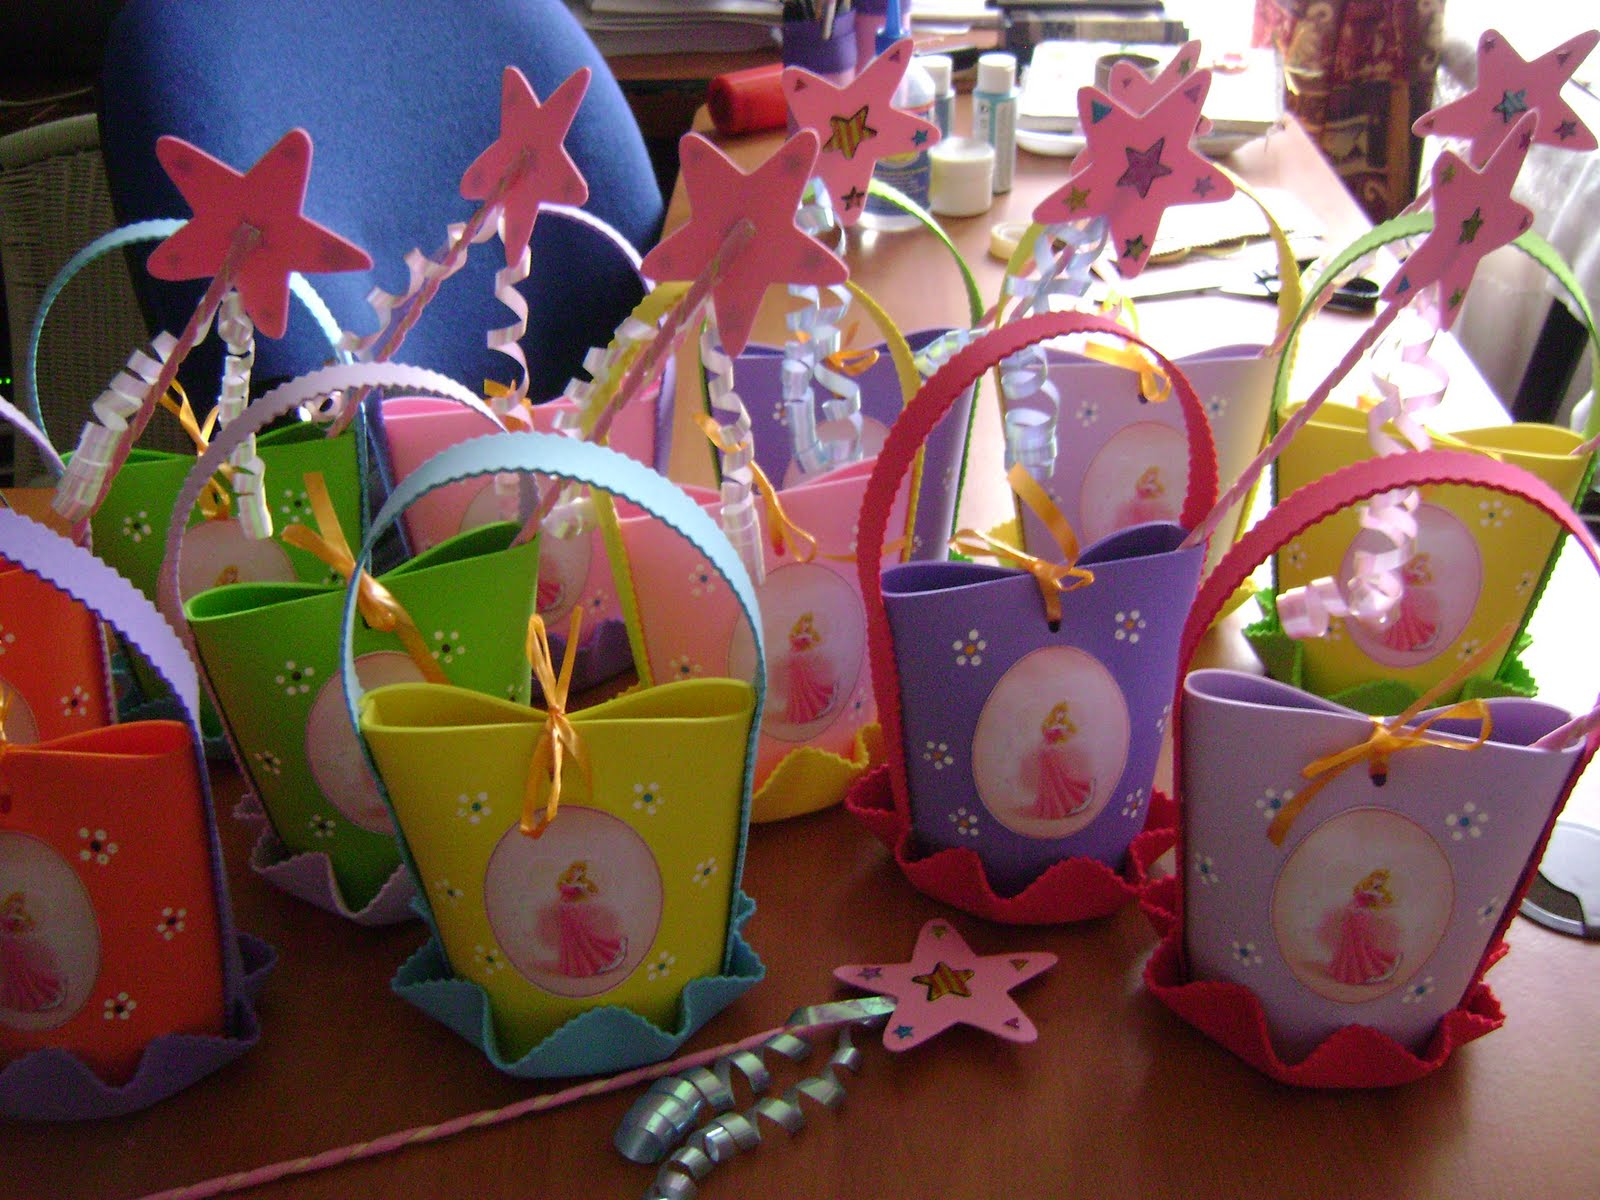 Alegr a eventos dulceros para ni a cumple cony princesa for Fiestas ideas originales